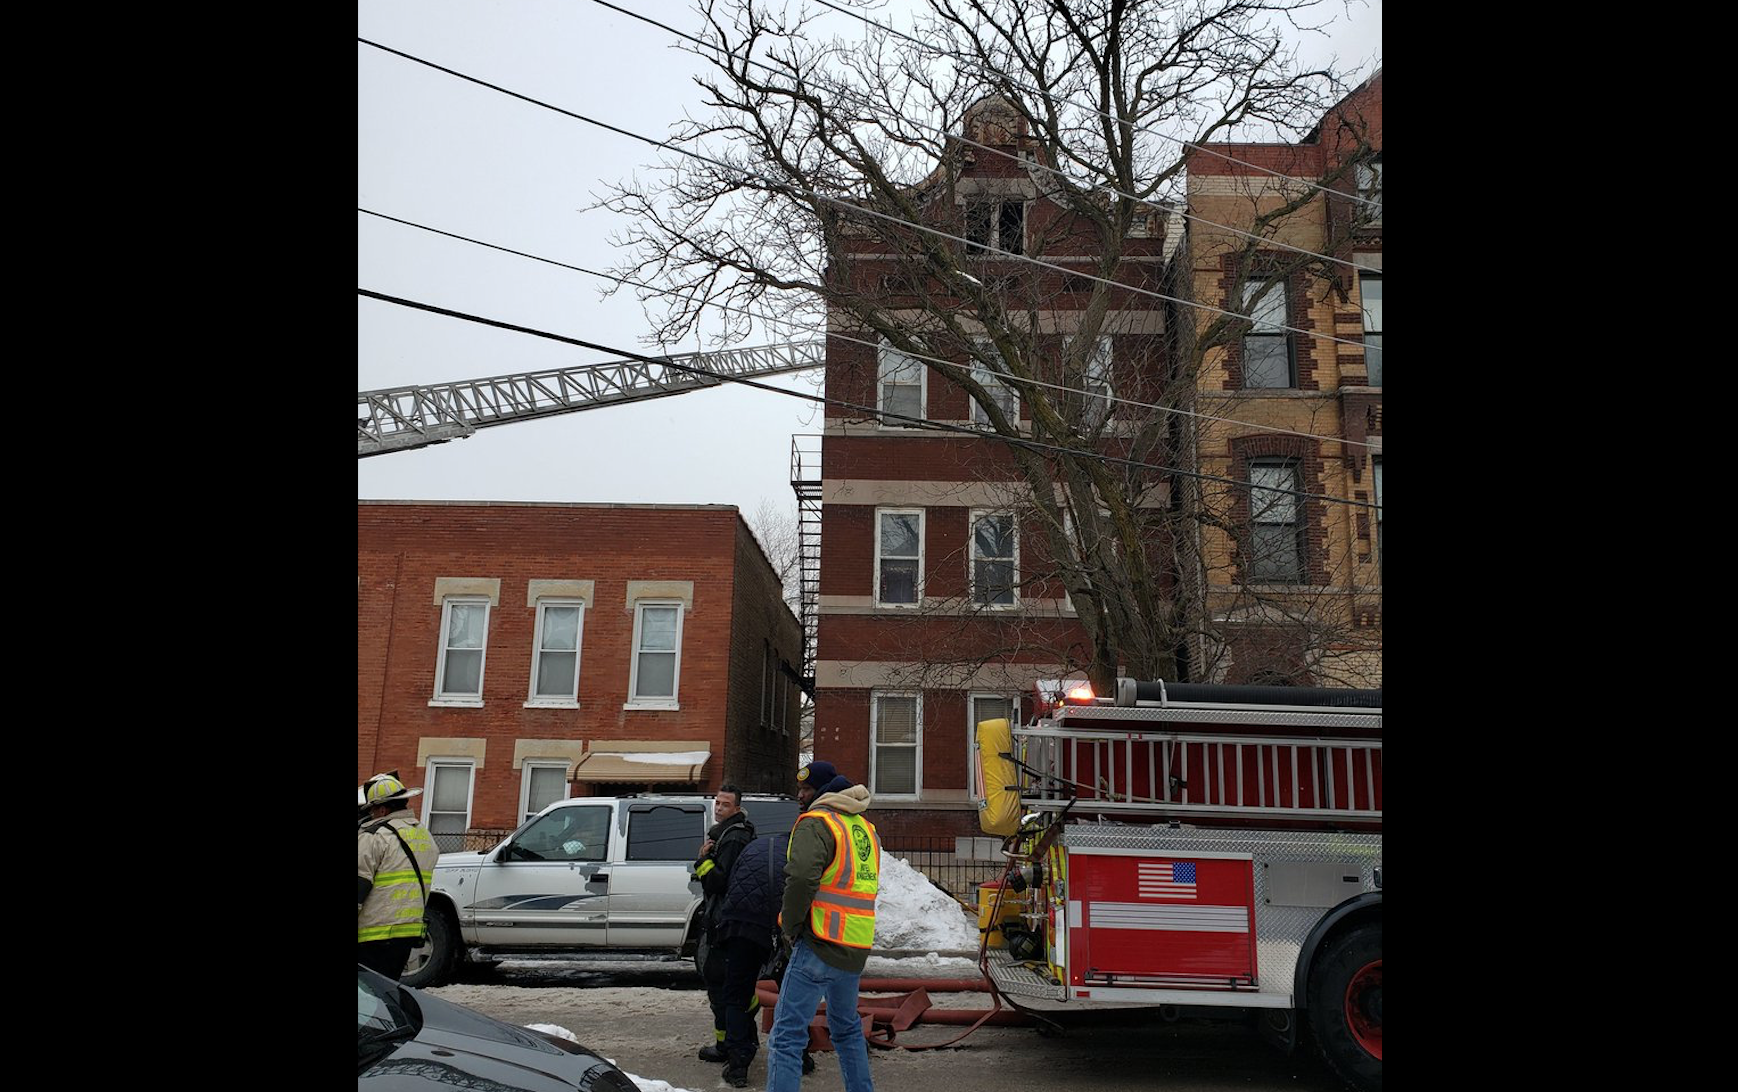 Firefighters respond to a blaze Feb. 10 in the 1000 block of West 32nd Street.